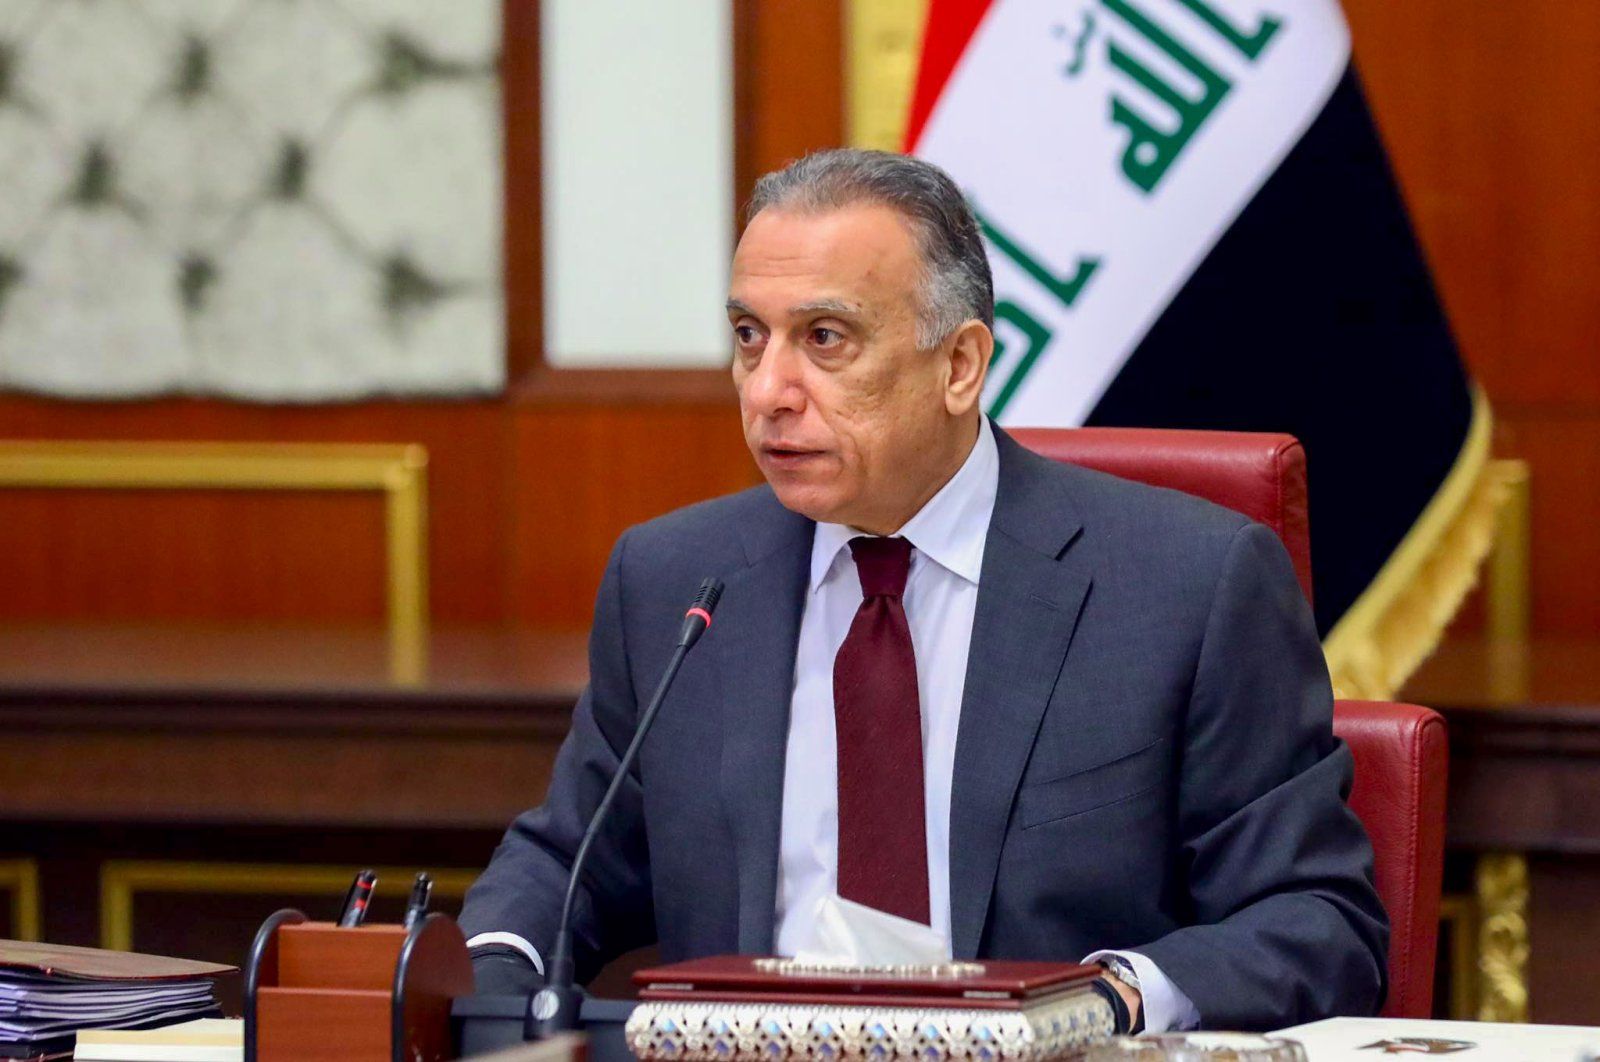 Iraqi Prime Minister Mustafa al-Kadhimi chairs the ministerial meeting of the new Iraqi cabinet, Baghdad, May 9, 2020. (AFP Photo)